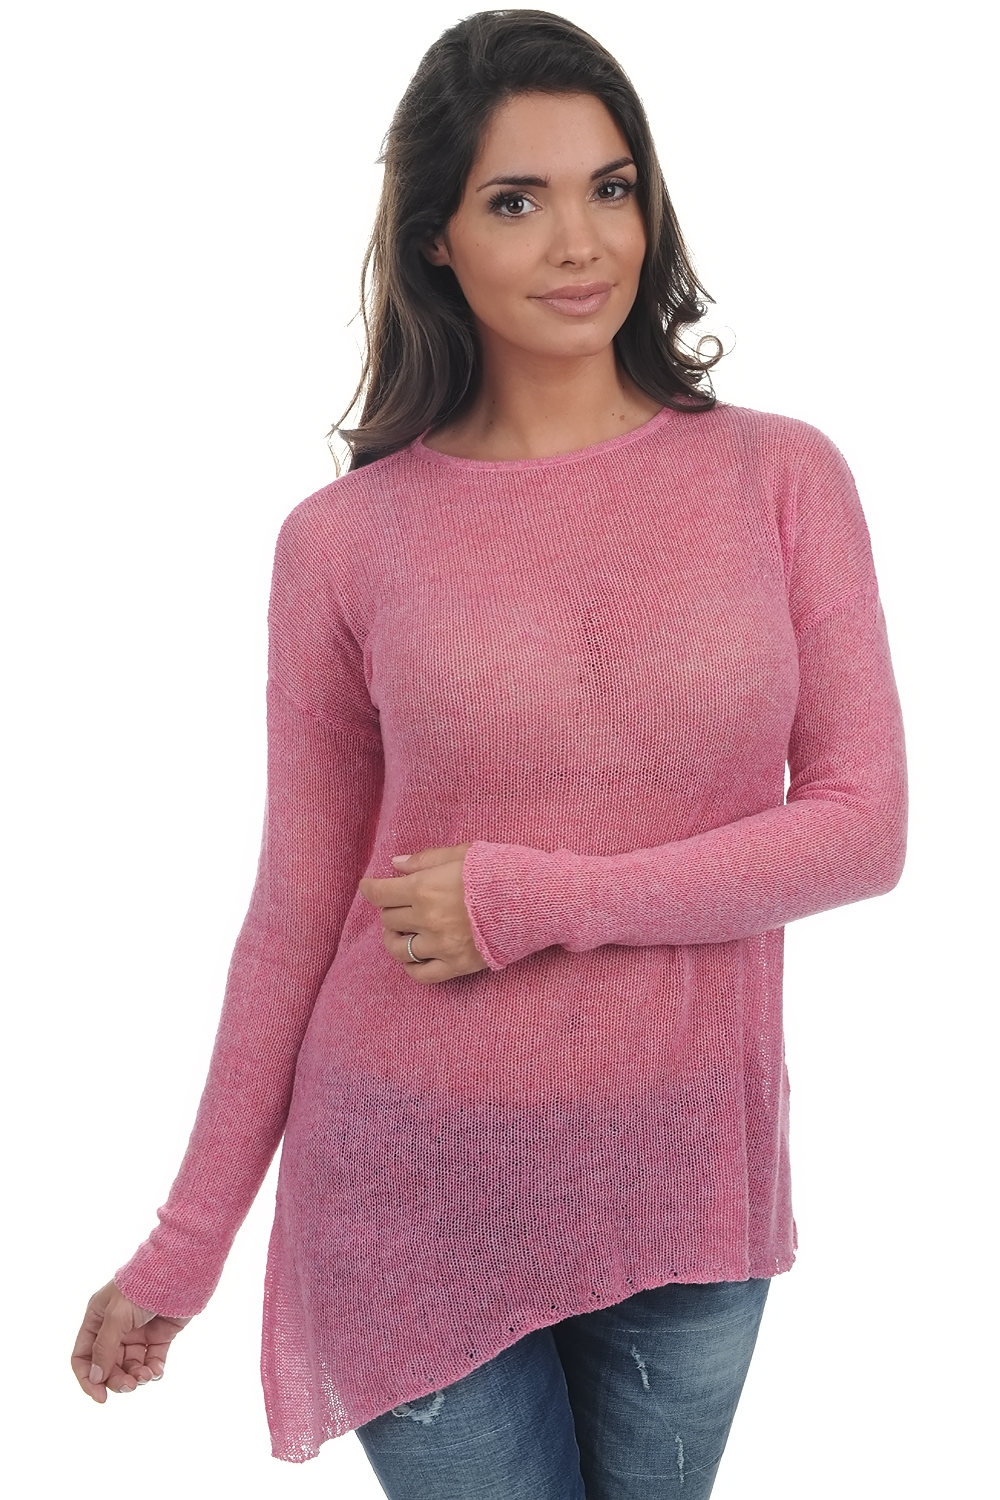 Cashmere ladies round necks adjani bubble gum xs